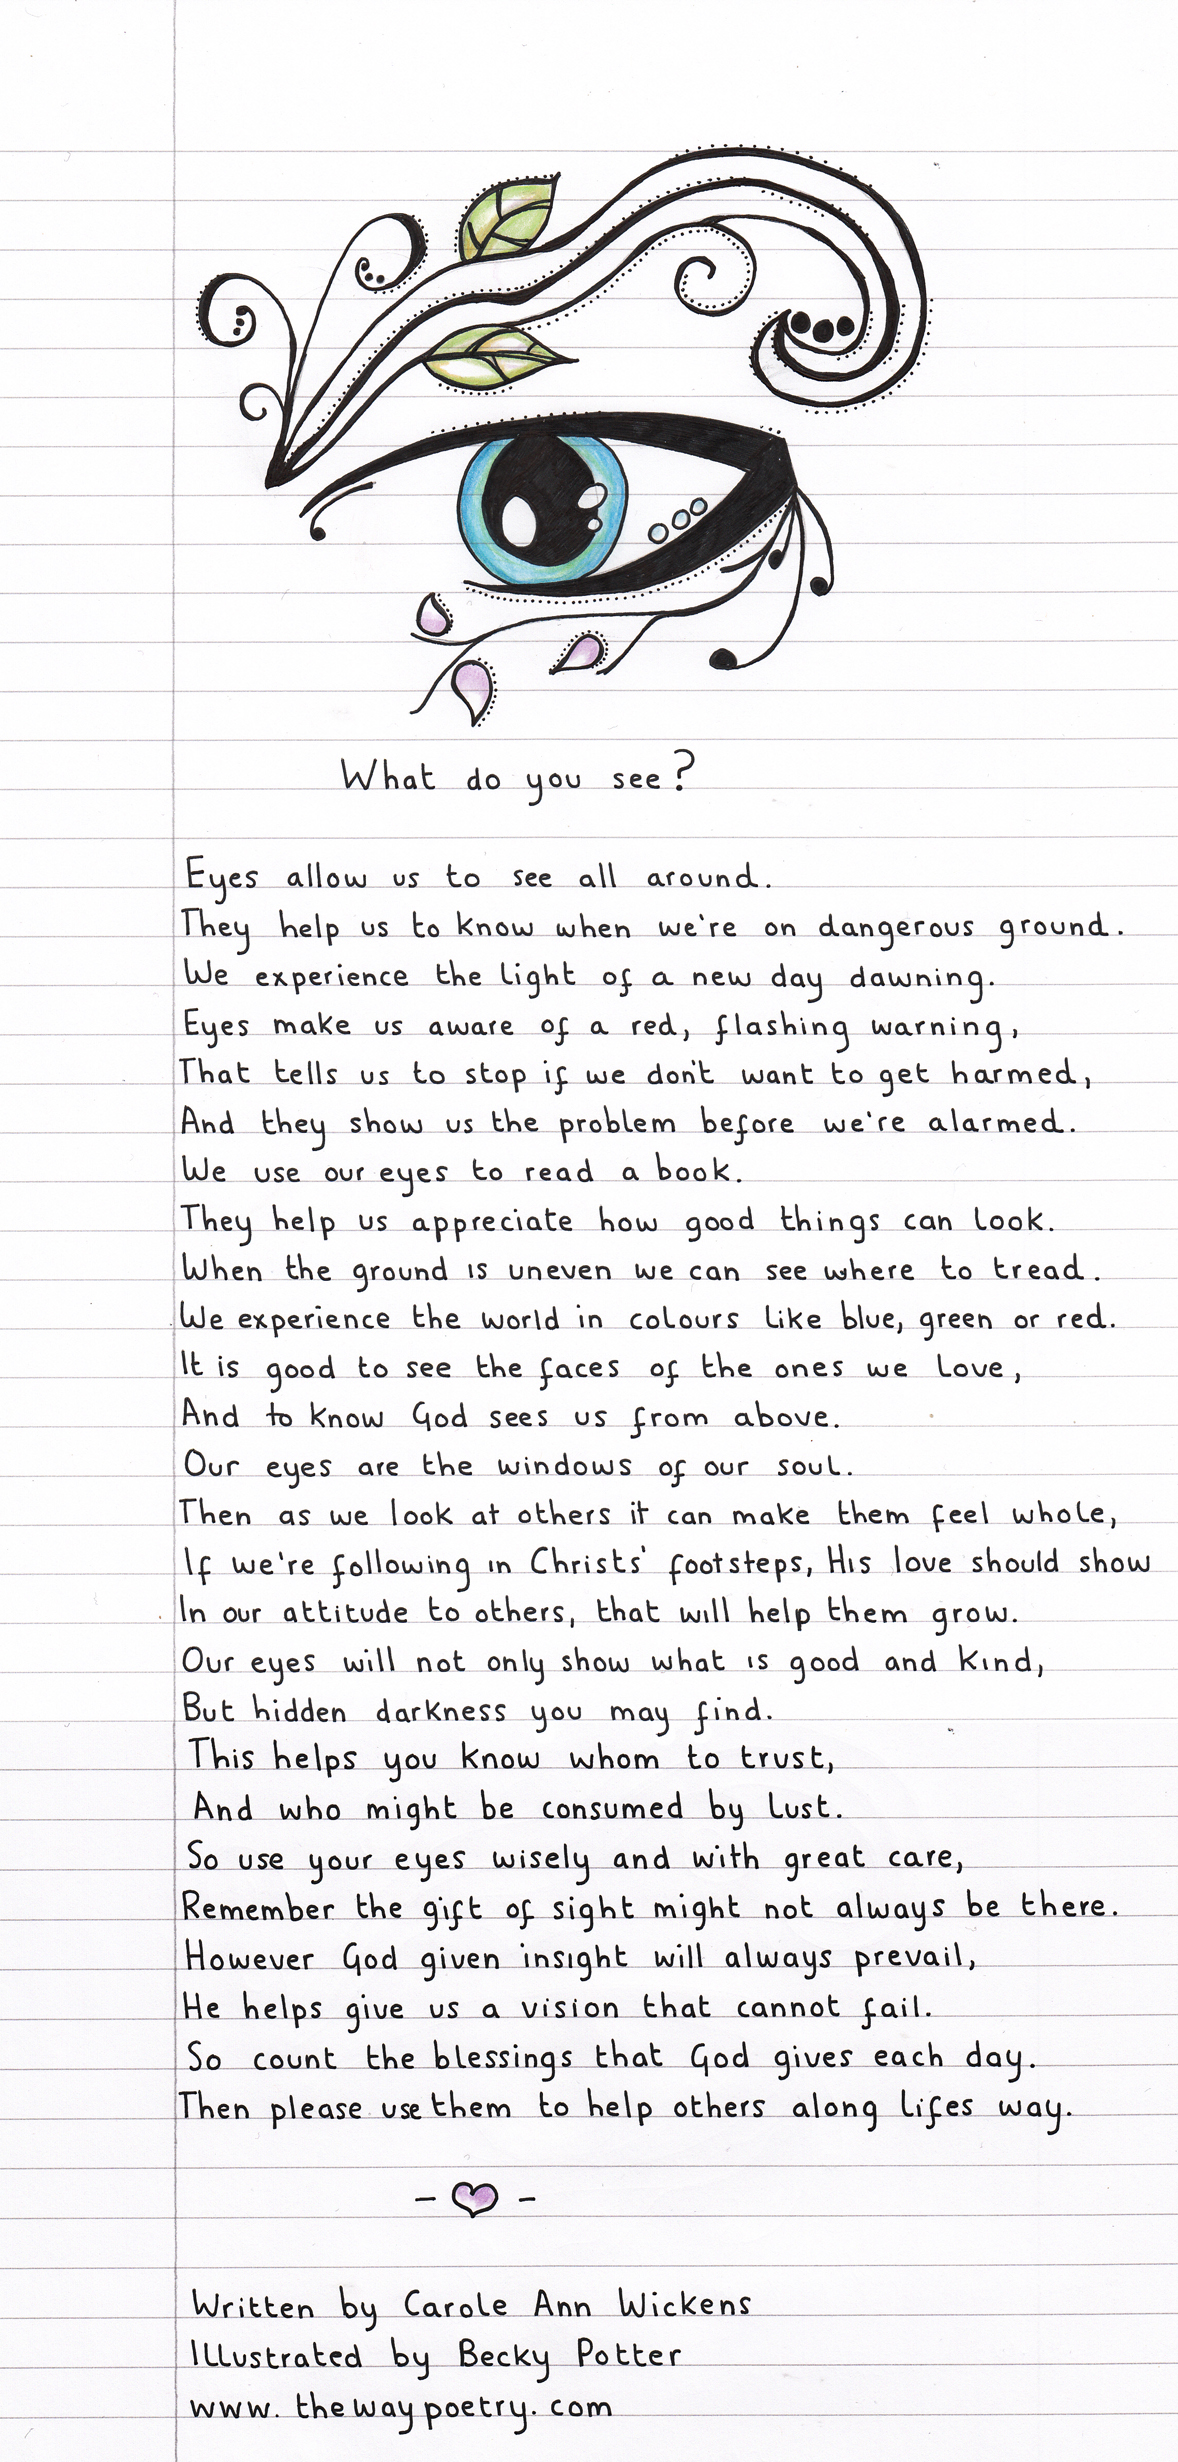 What Do You See? by Carole Ann Wickens